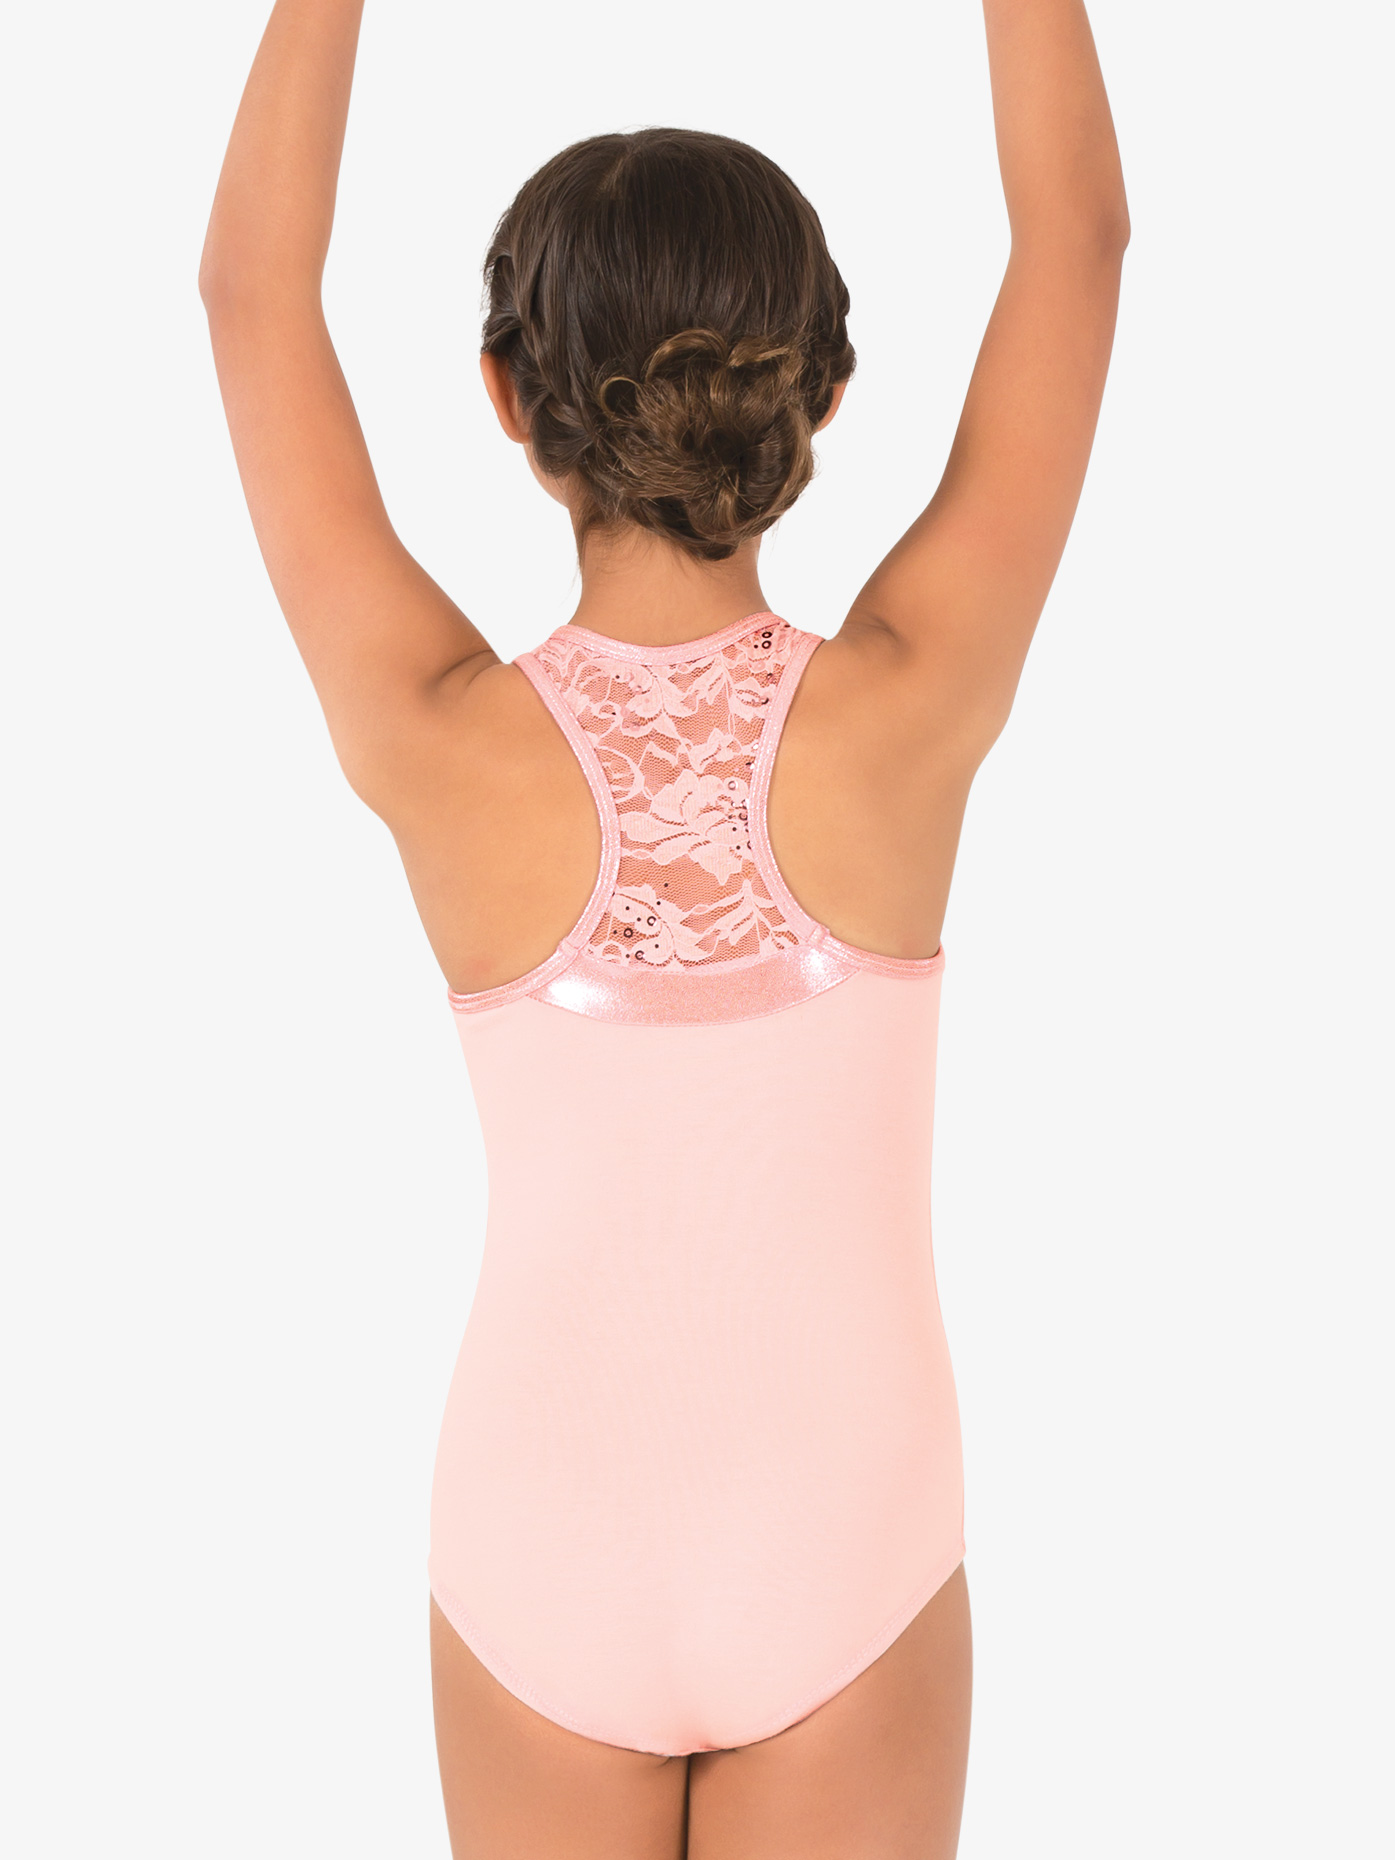 La Petite Ballerina Girls Sequin Lace Tank Leotard PB2032C